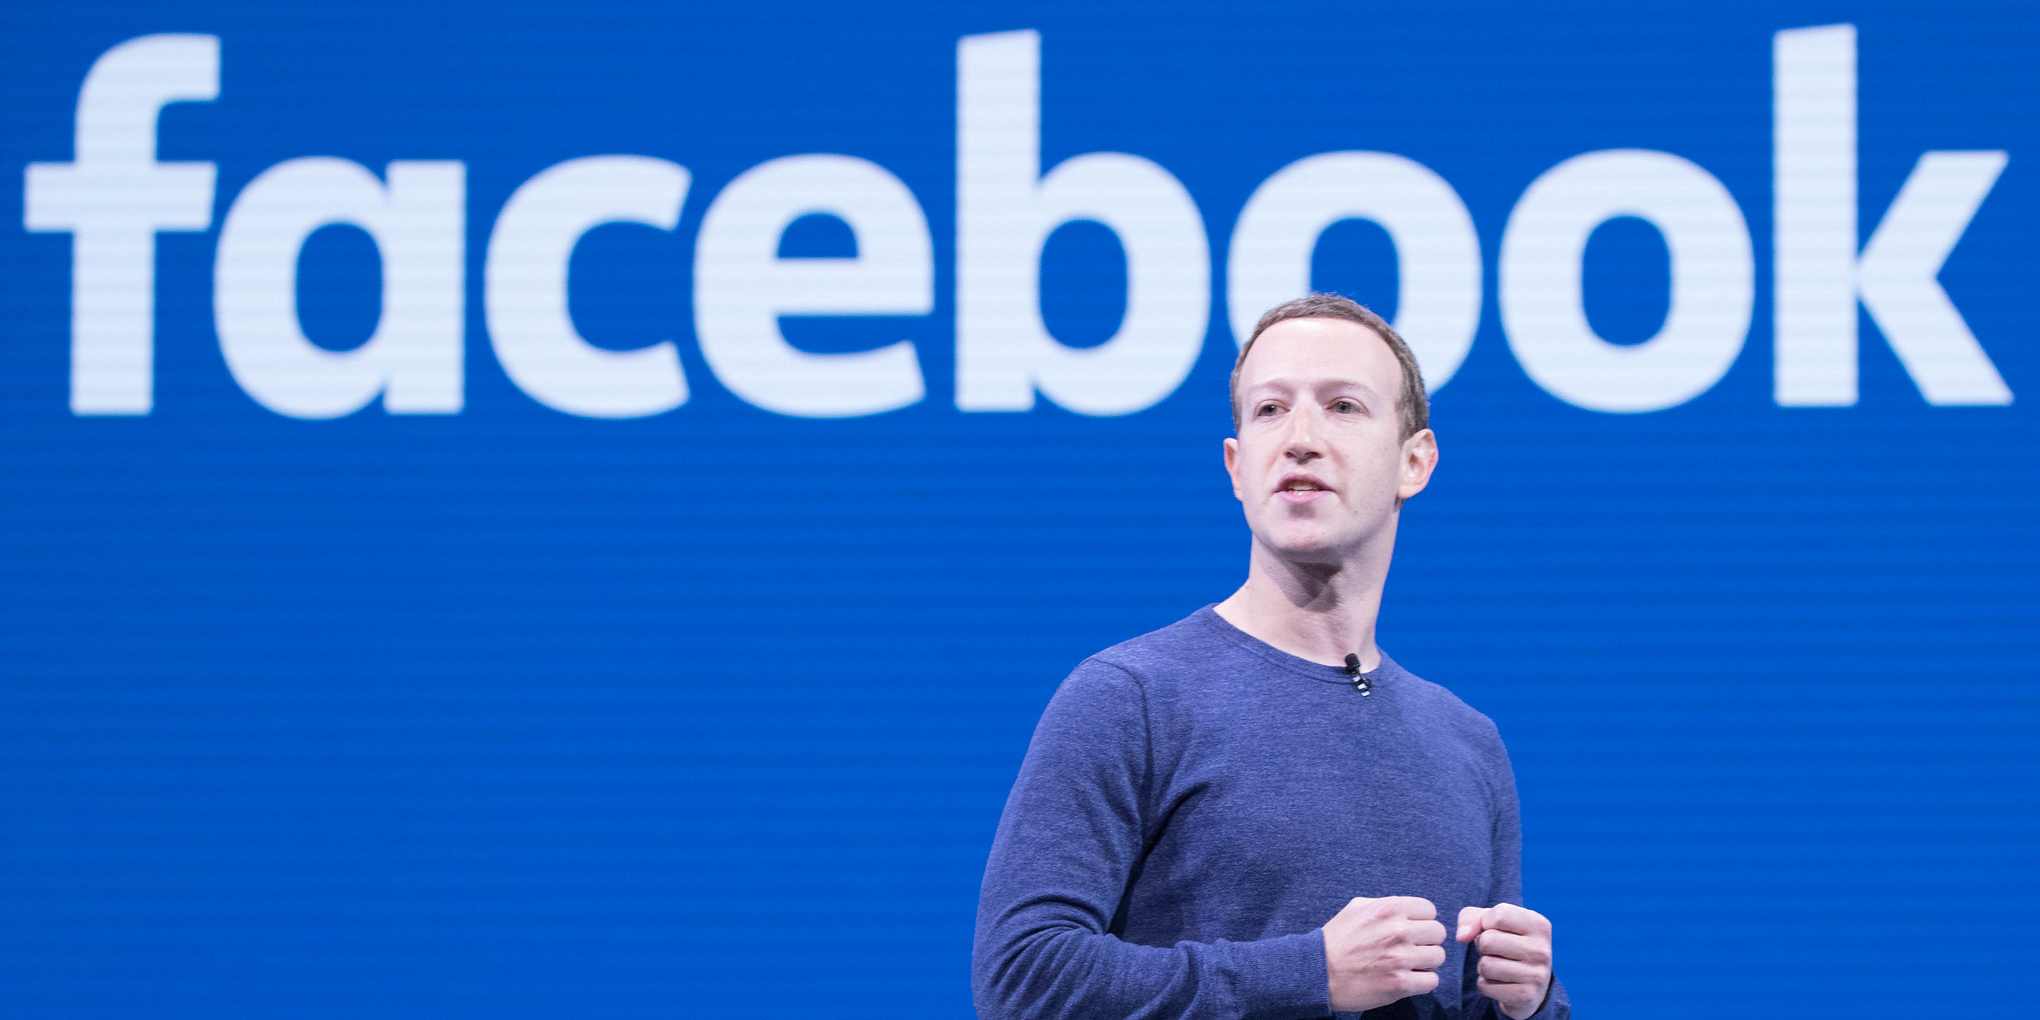 Delete Facebook Hashtag Trends Amid Zuckerberg-Conservative Meetings